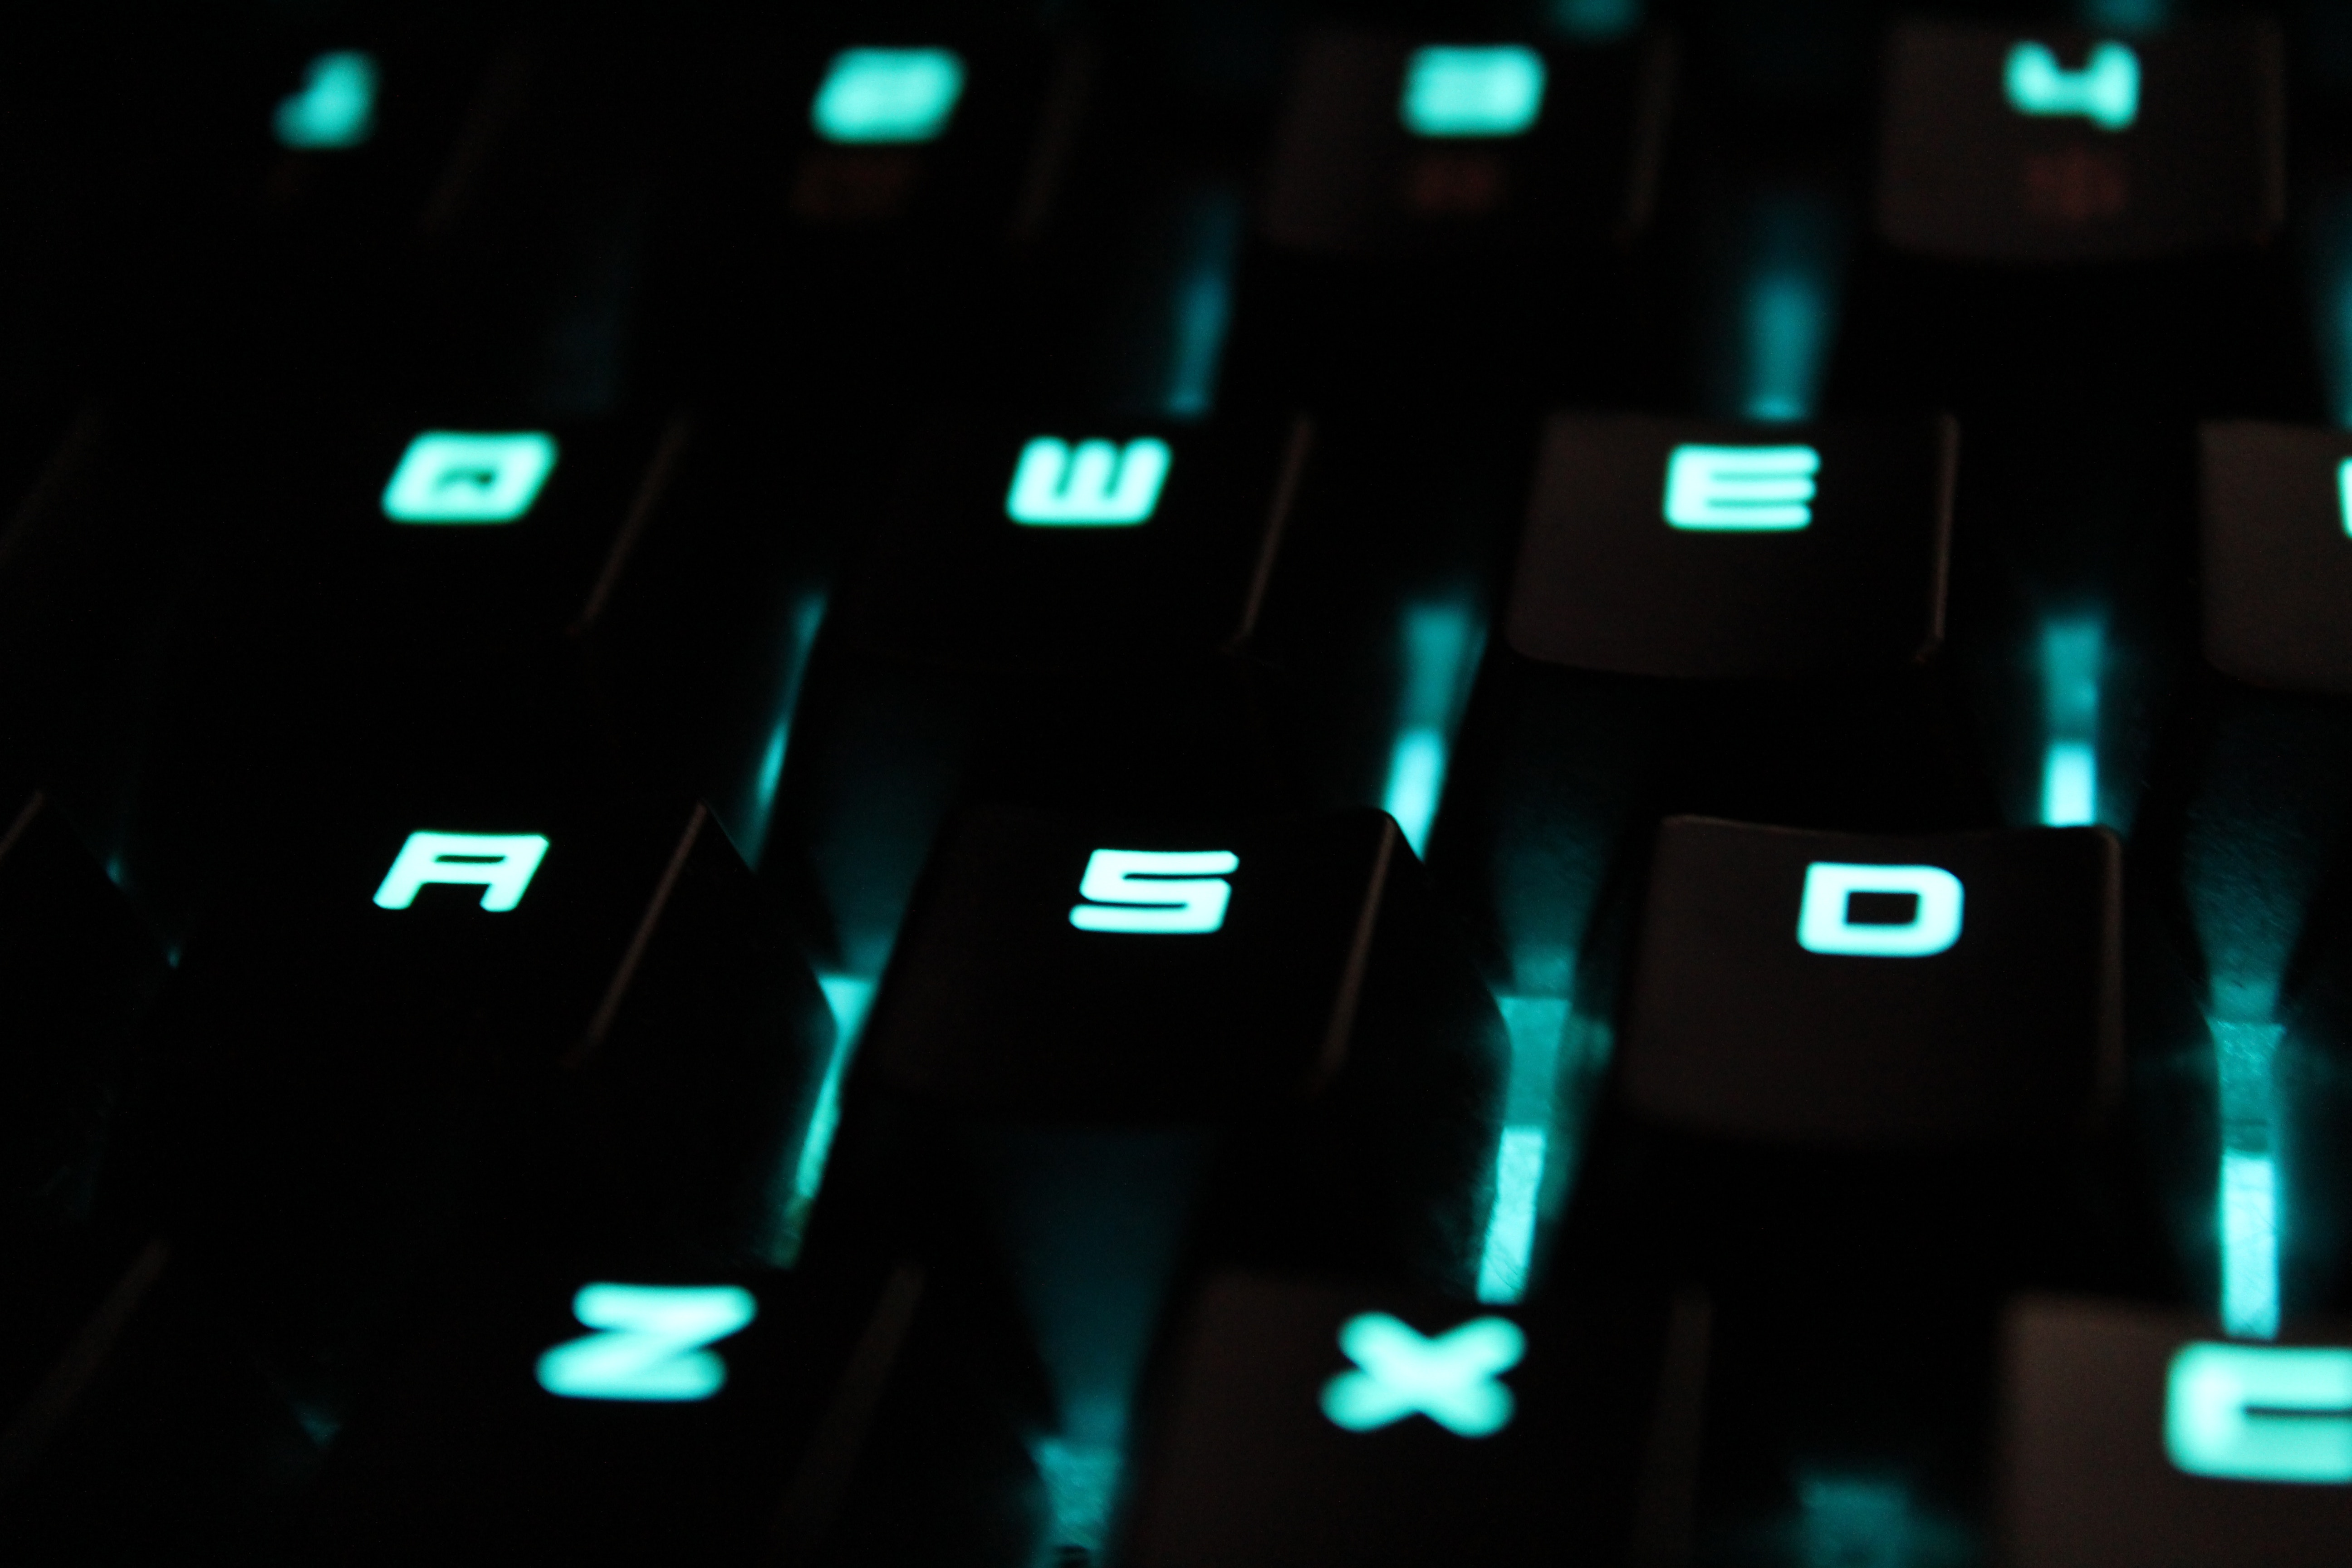 Glowing blue keys